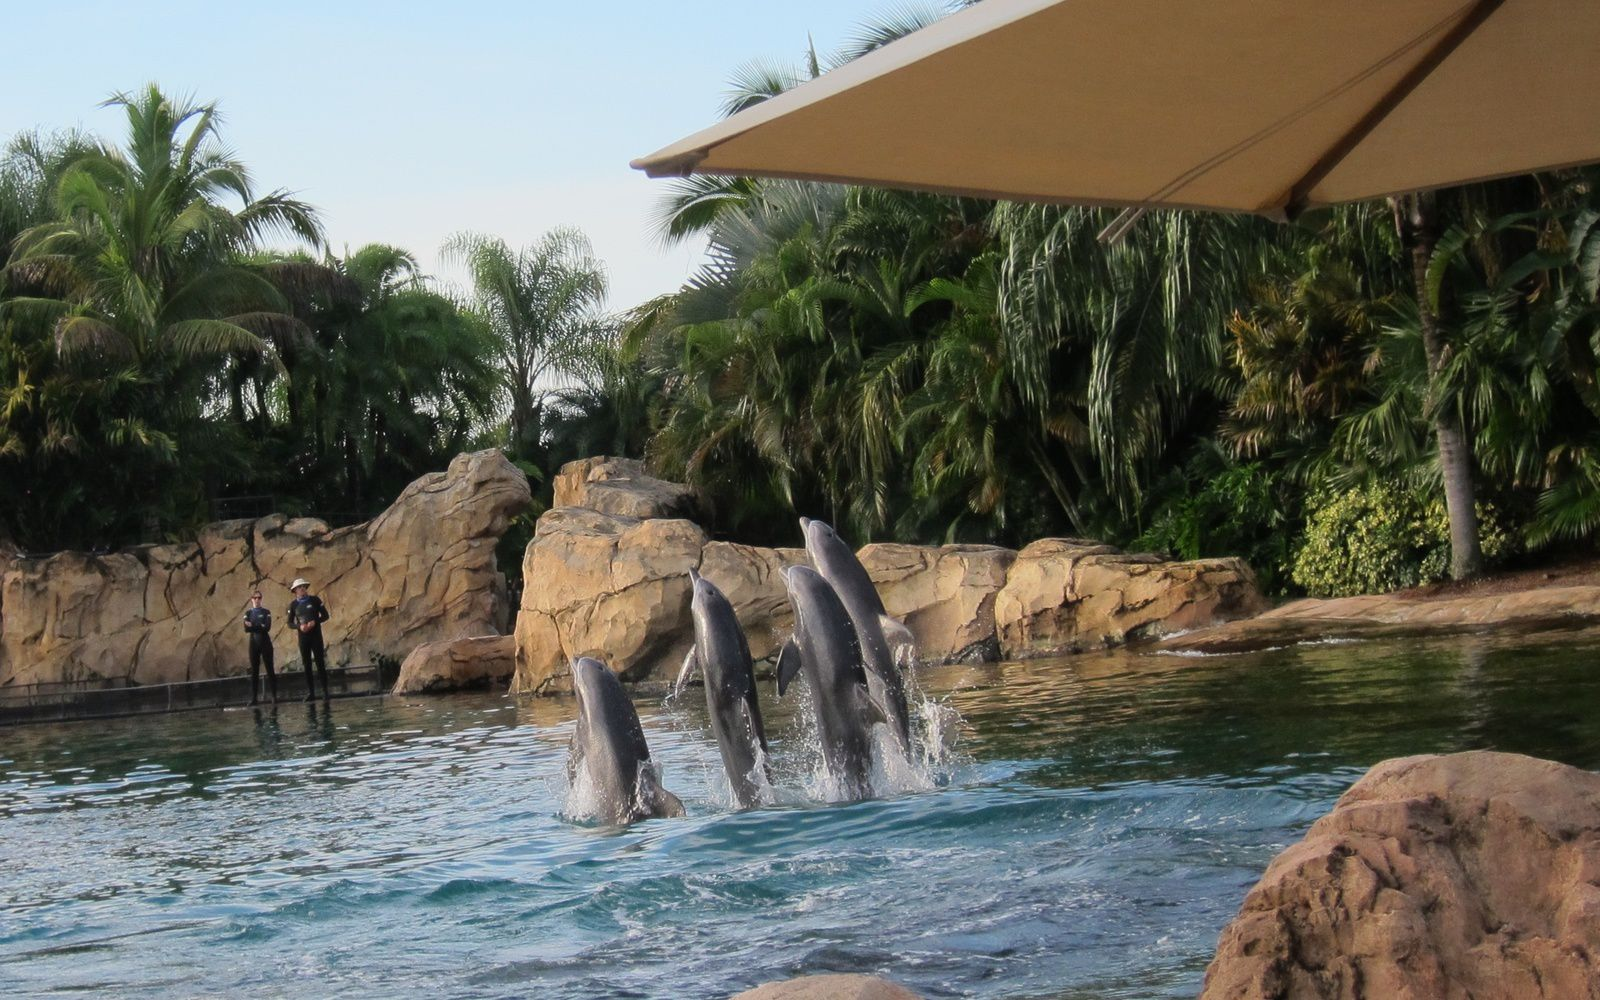 Recit d'une journee extraordinaire a Discovery Cove Orlando - FL (1)